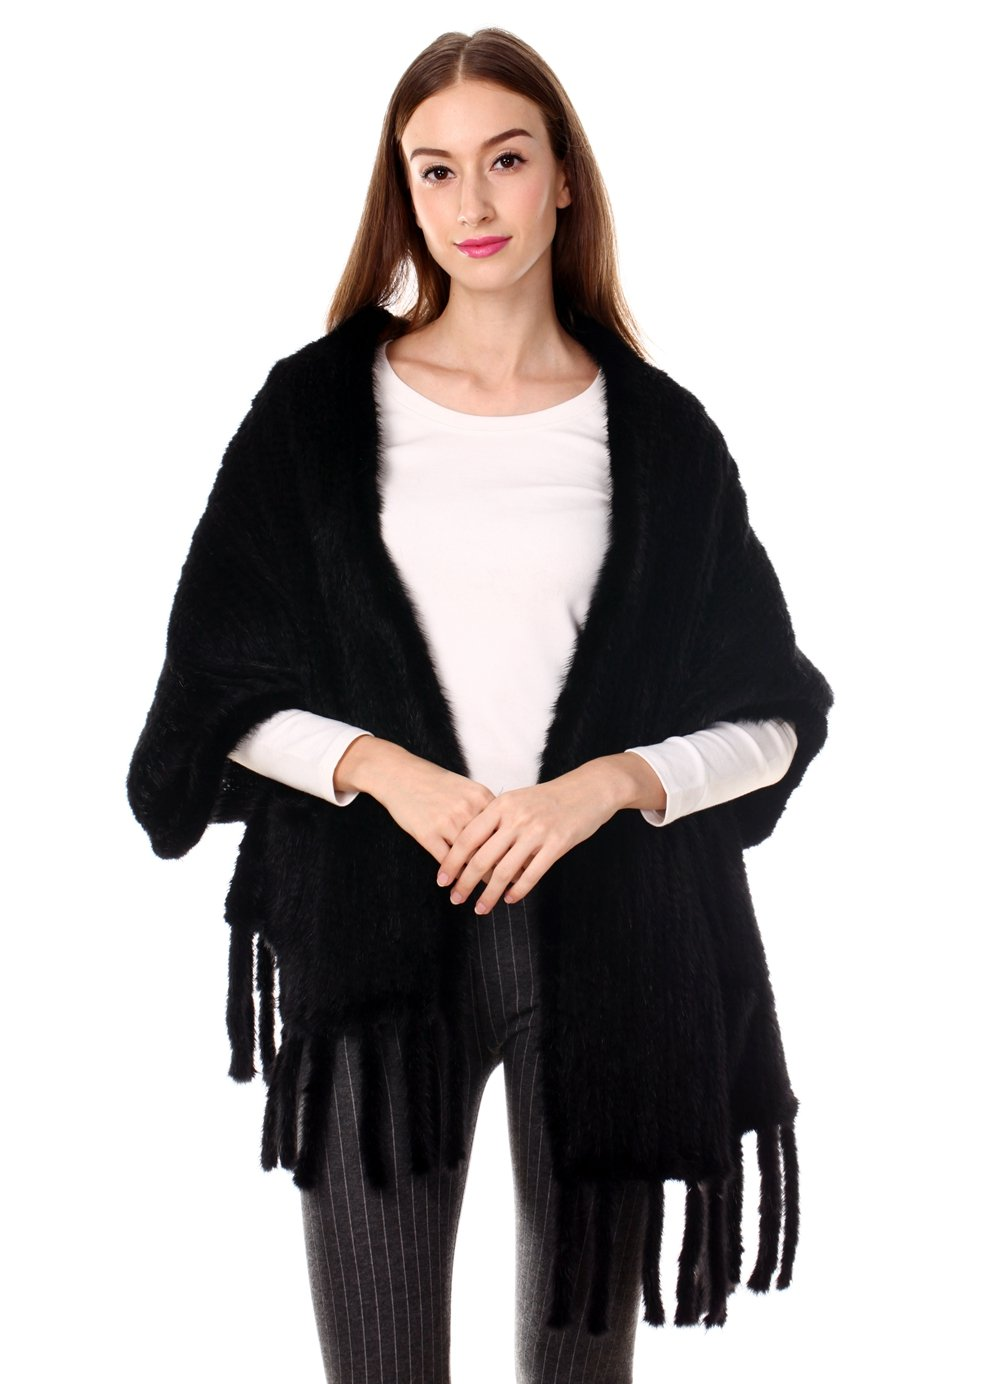 Ferand Lightweight Long Knitted Real Mink Fur Shawl with Tassels and Pockets for Women, Black